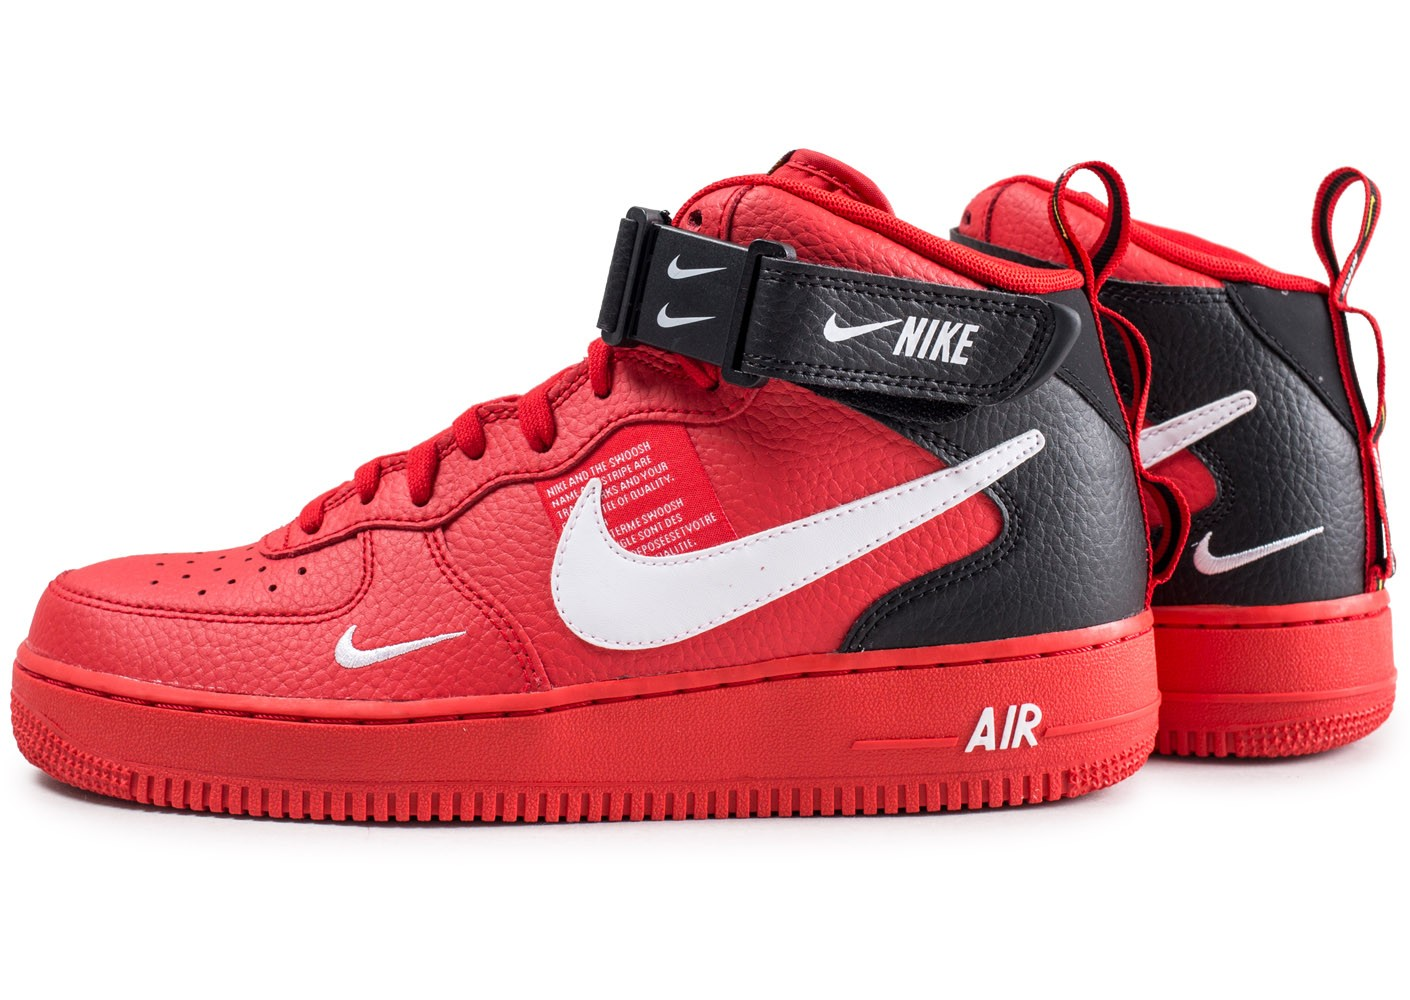 Nike Nike Air Force 1 07 Mid LV8 Utility rouge - Chaussures ...